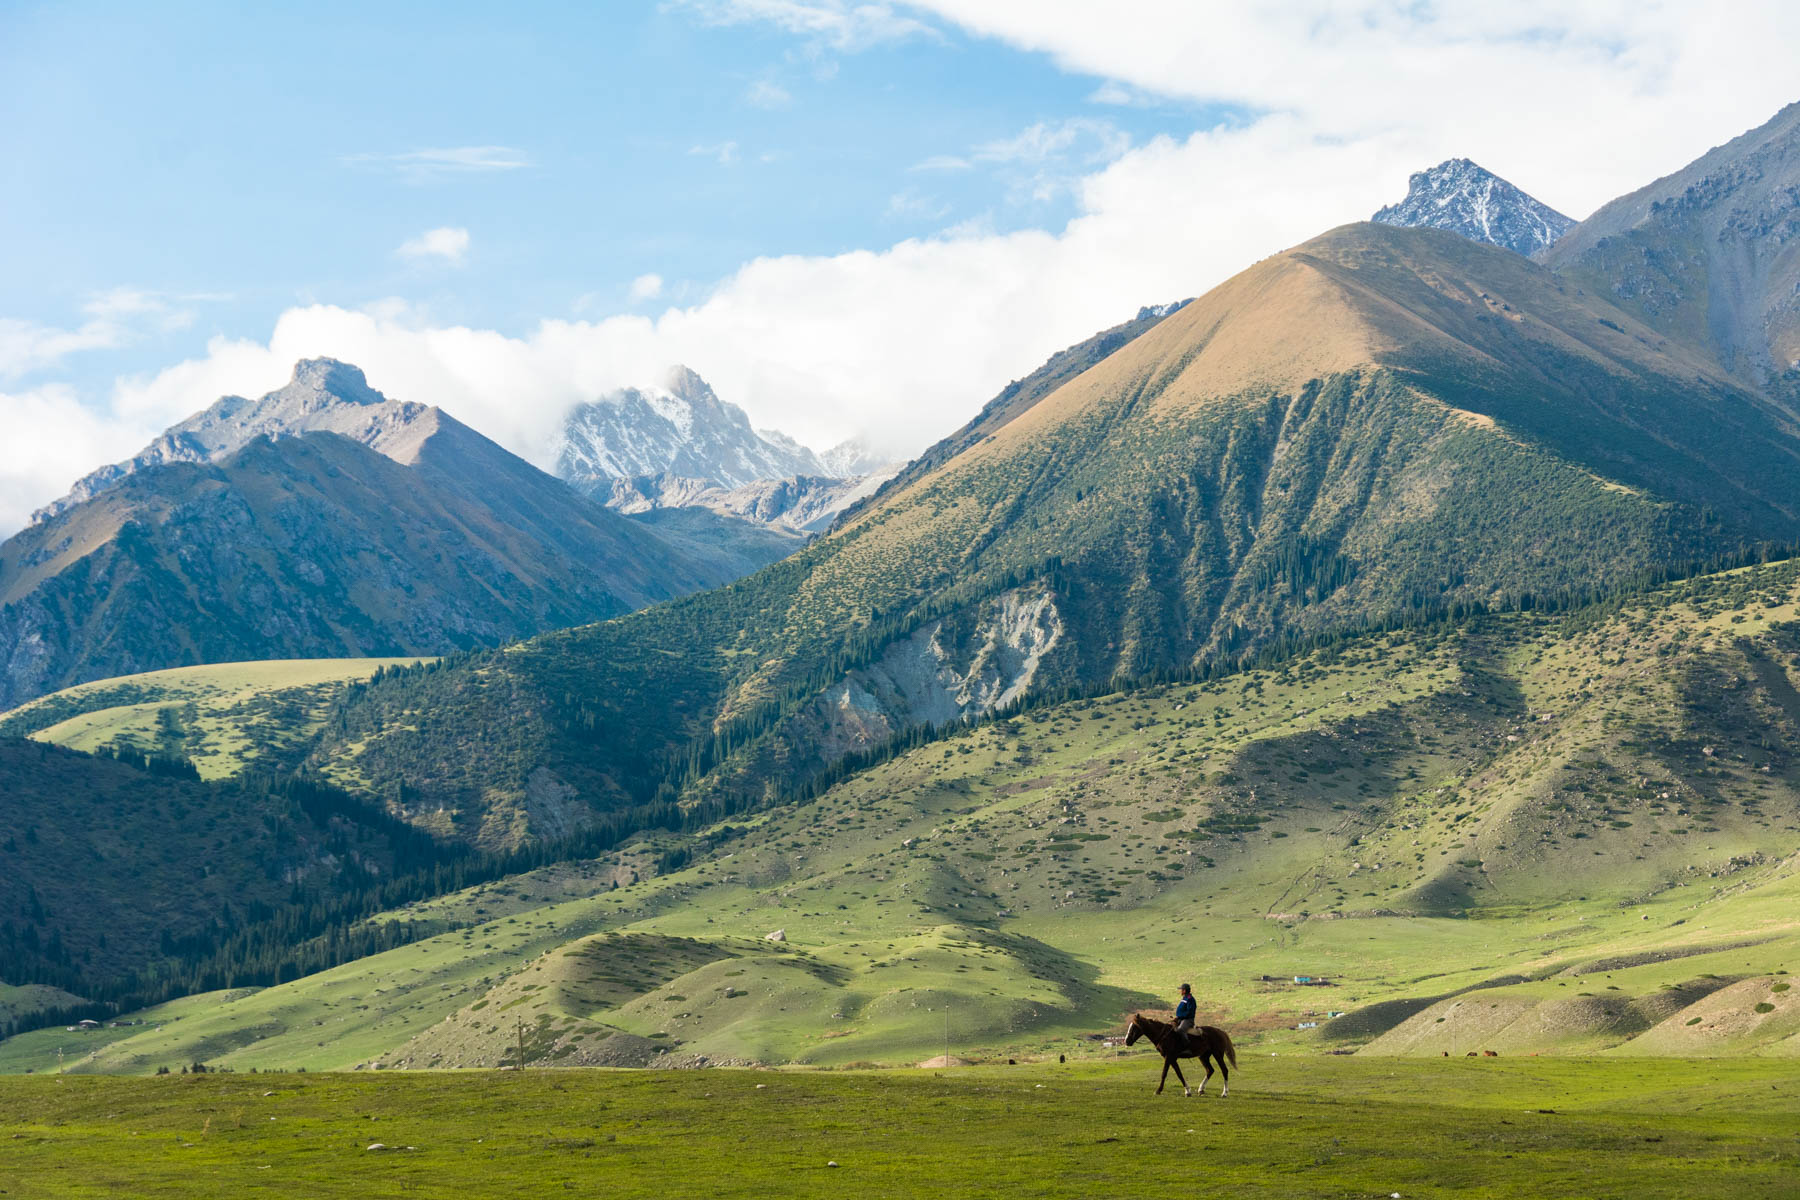 Mountains in Kirchin Gorge, the backdrop of the World Nomad Games in Kyrgyzstan